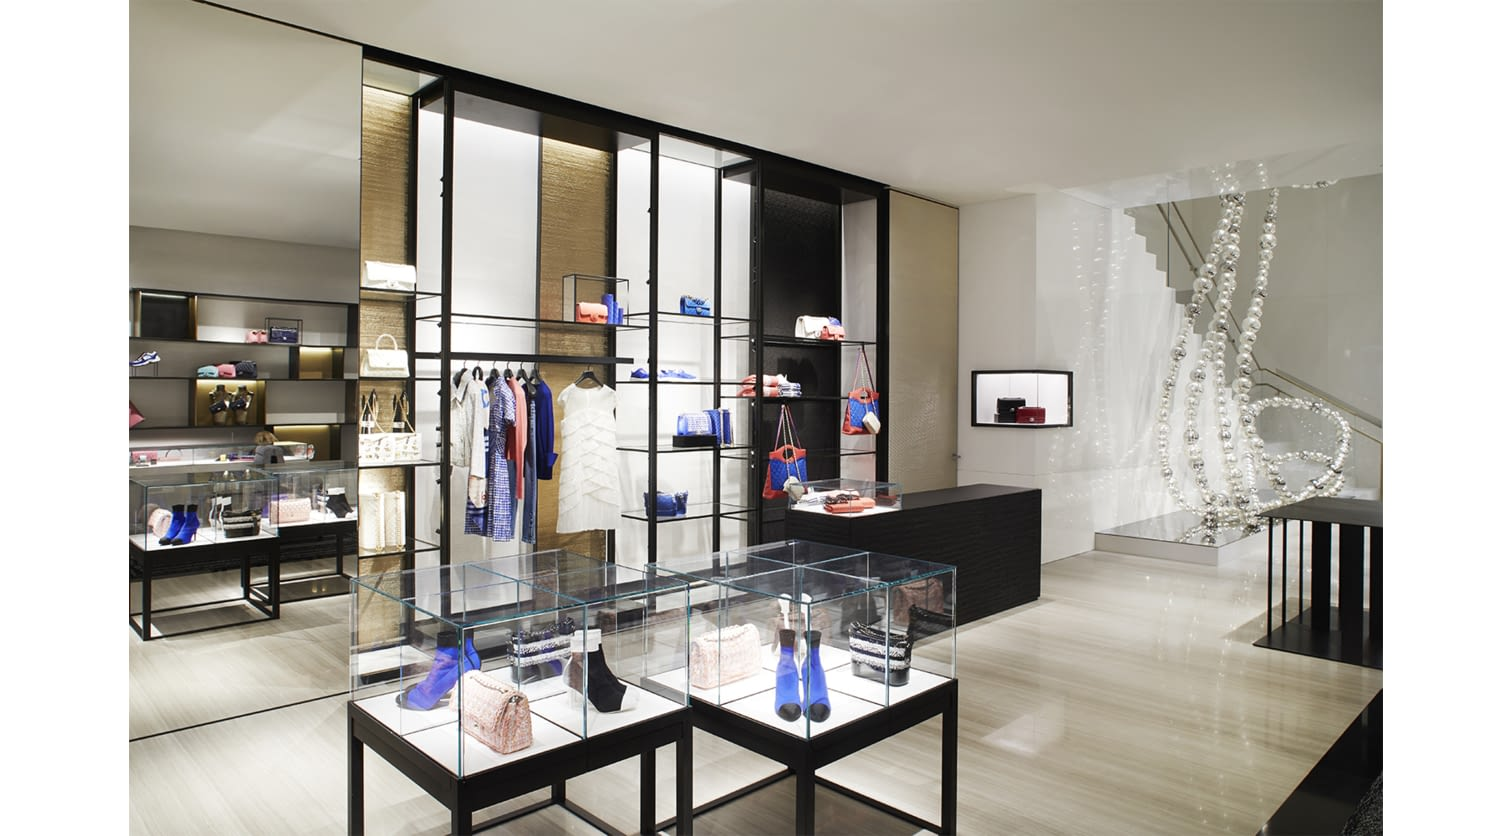 03_The_NYC_57th_street_flagship_reopening_pictures_by_Sam_Frost_LD.jpg